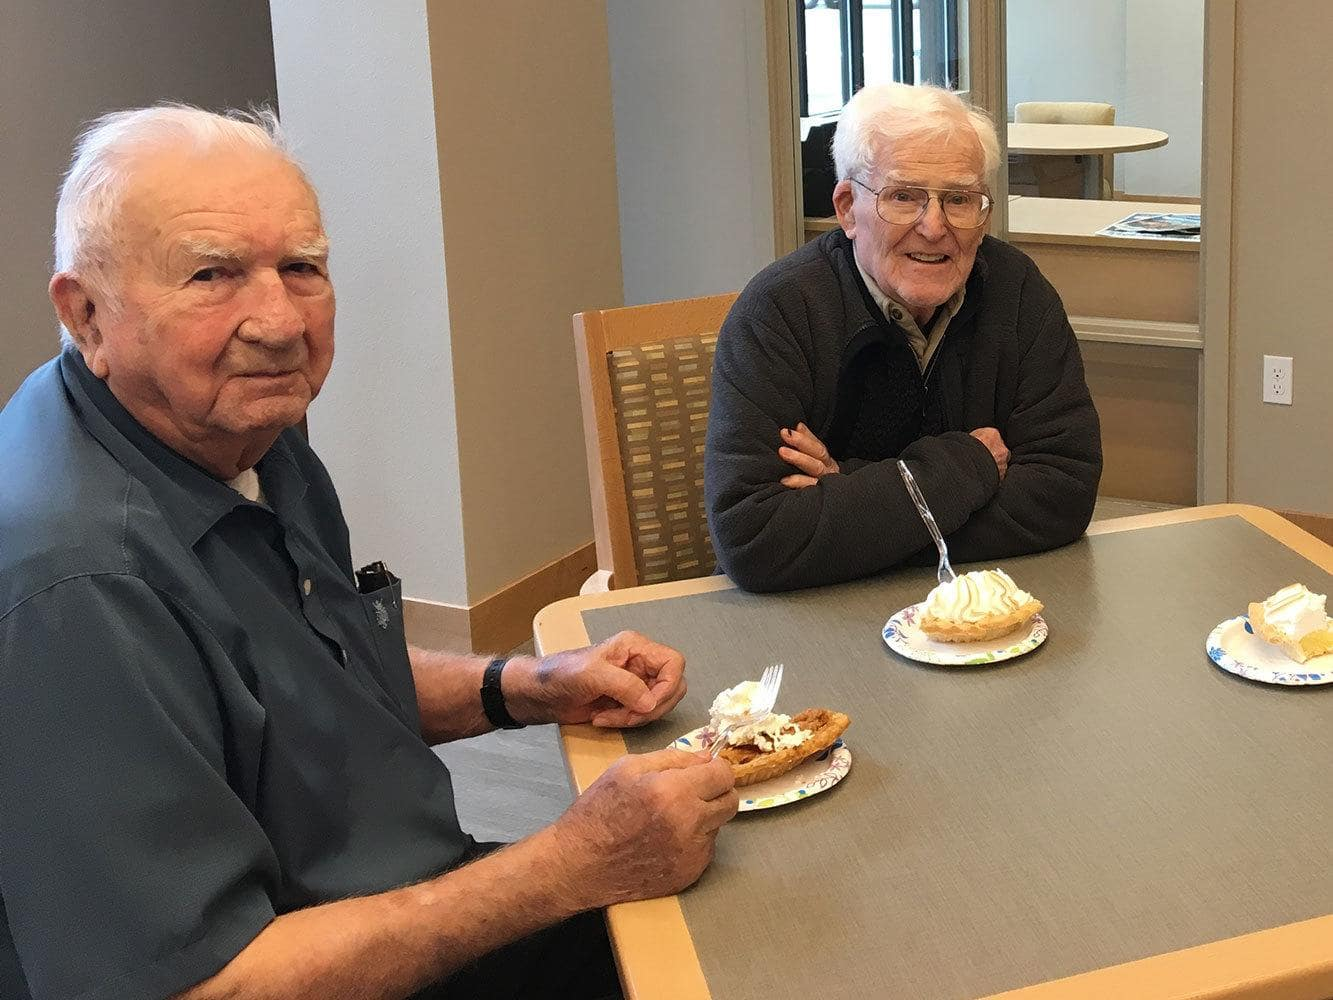 Men enjoying pie together at Auburn